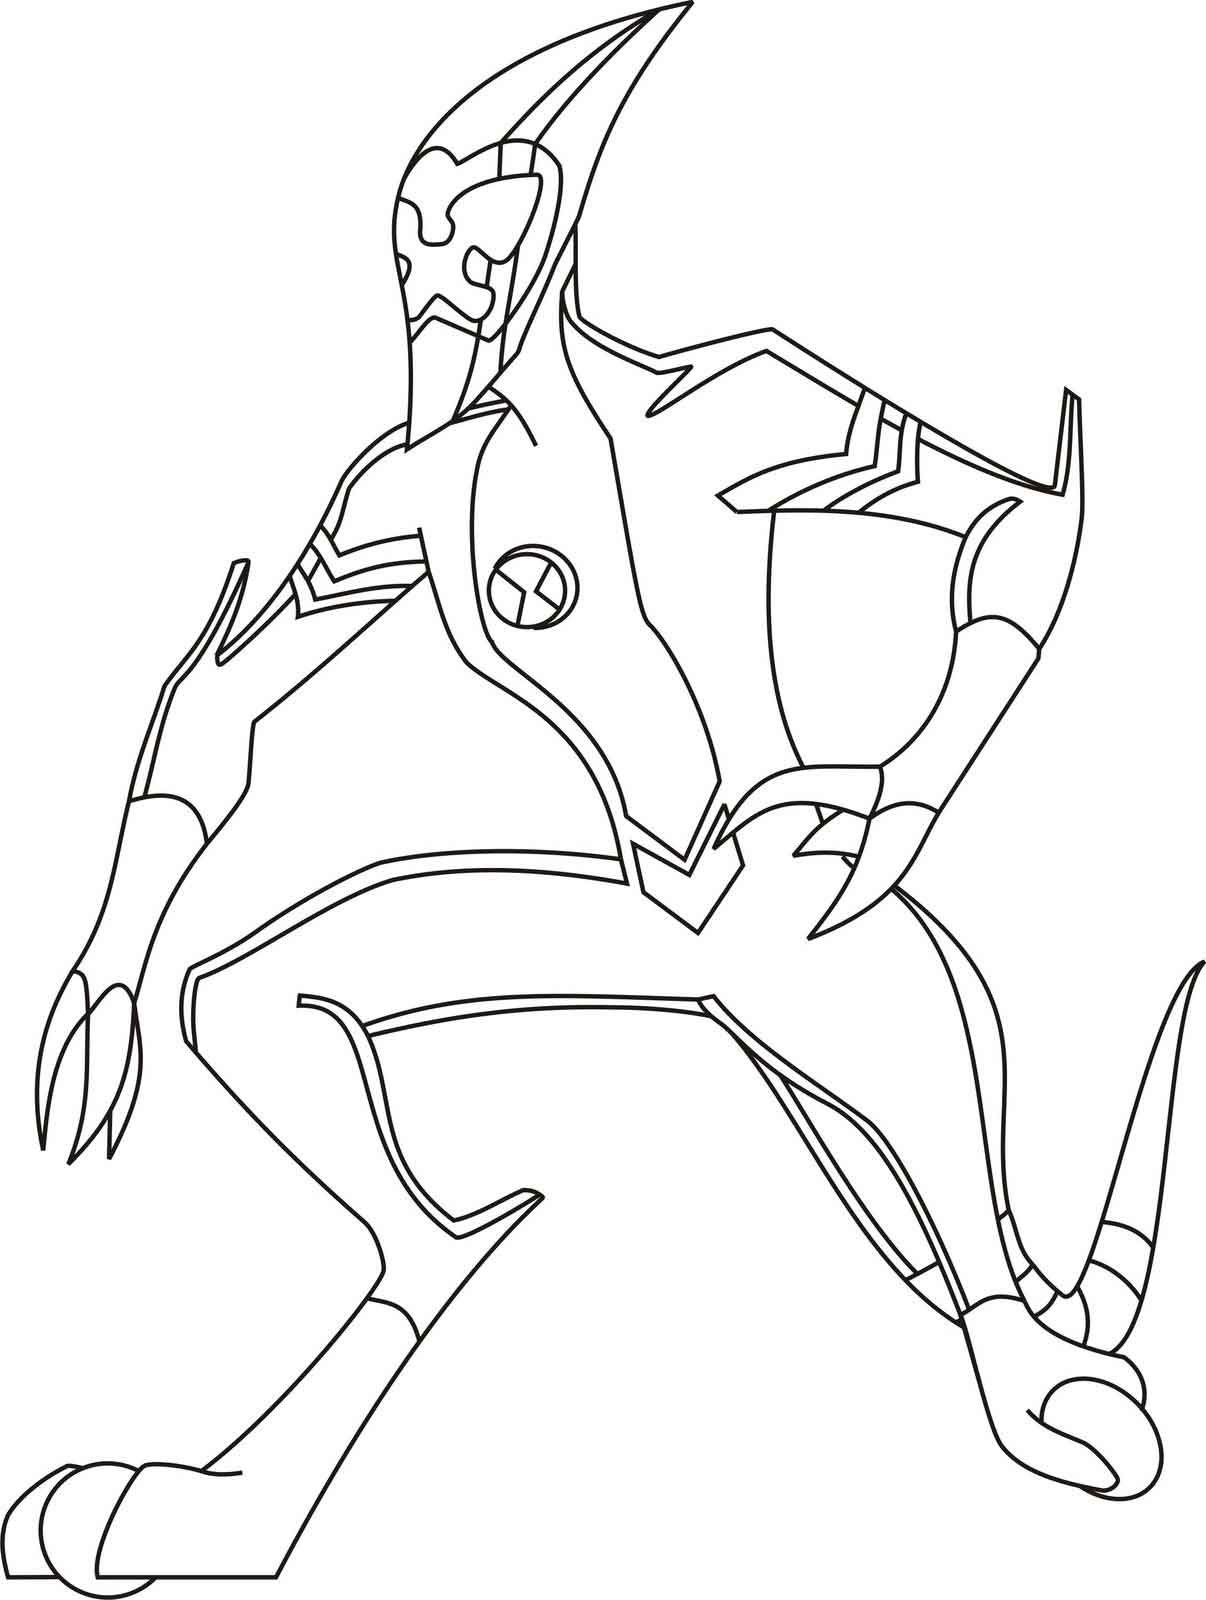 ben 10 coloring page printable ben ten coloring pages for kids cool2bkids page coloring 10 ben